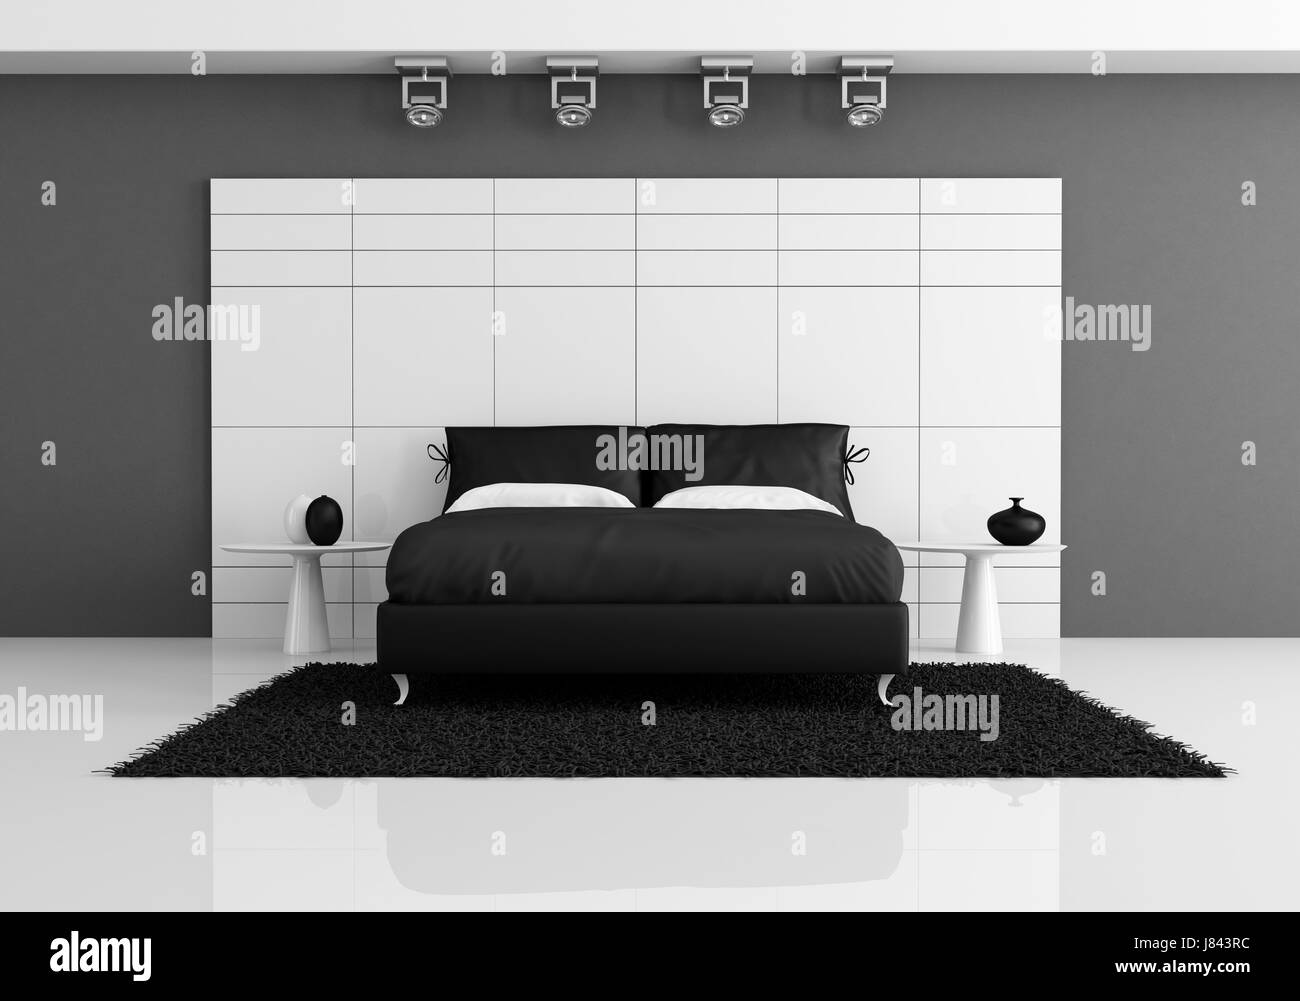 Furniture Bed Interior Black Swarthy Jetblack Deep Black